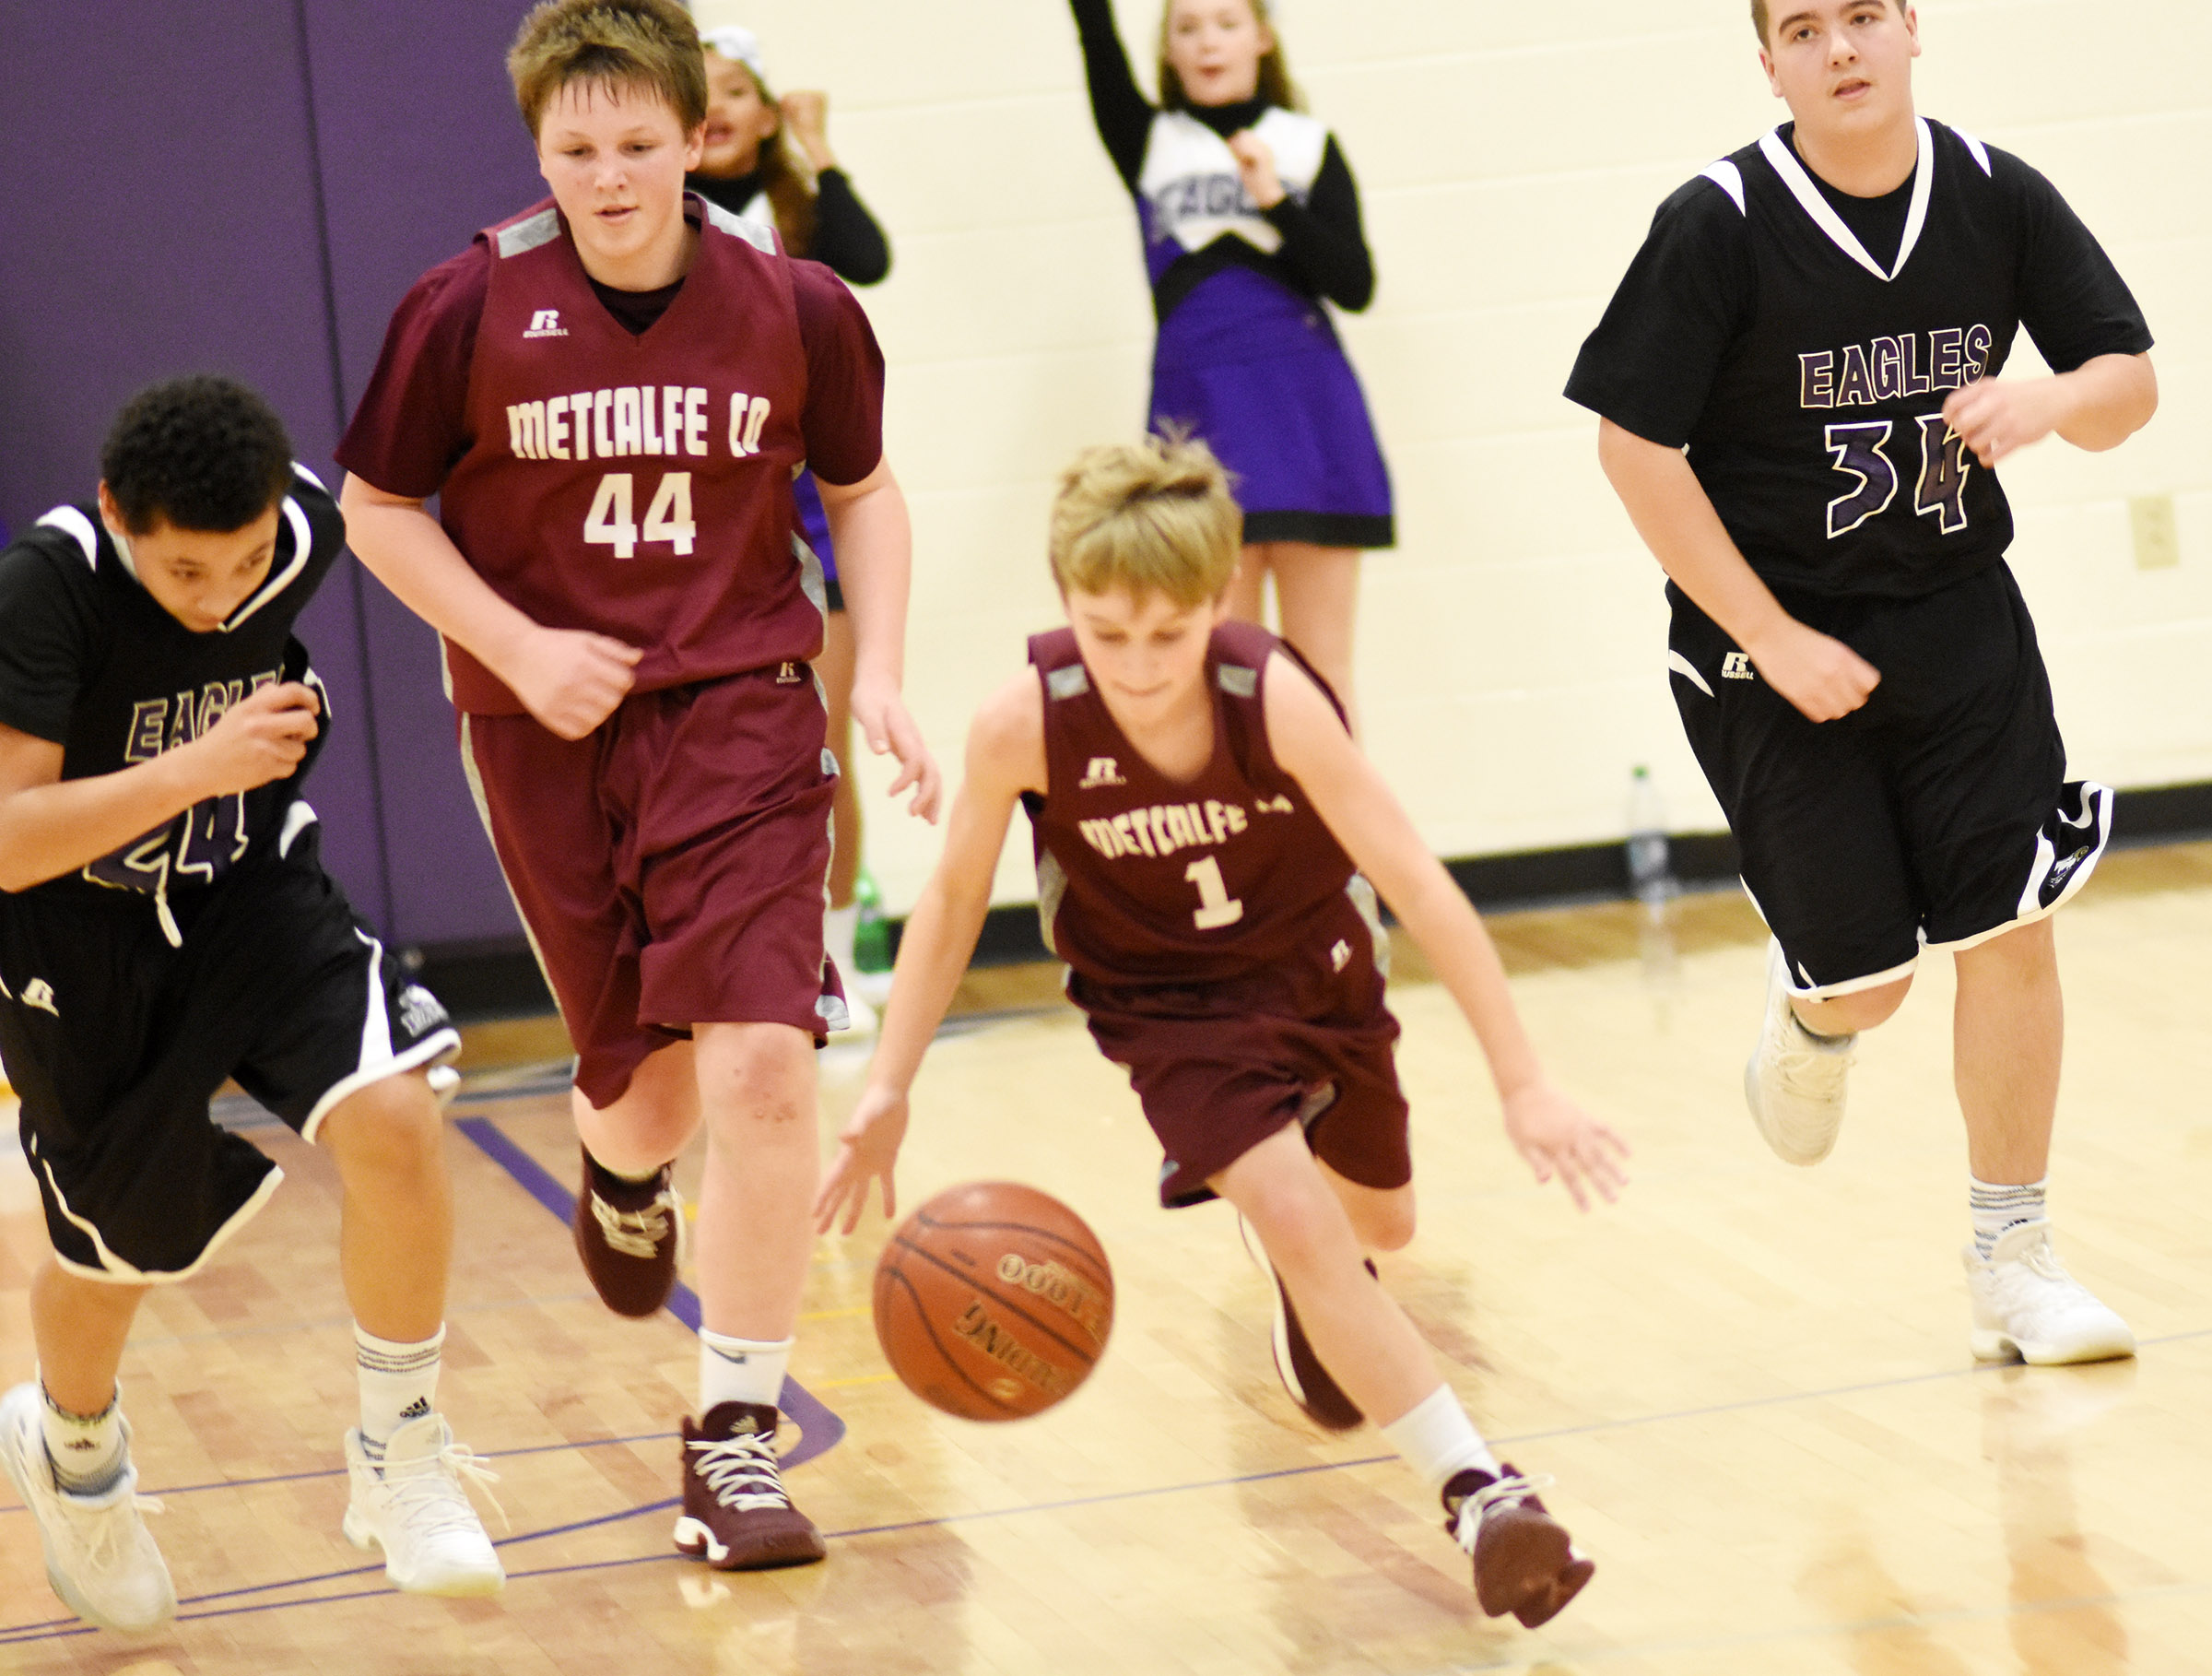 CMS eighth-graders Brice Spaw, at left, and Jack Sabo run down the court.